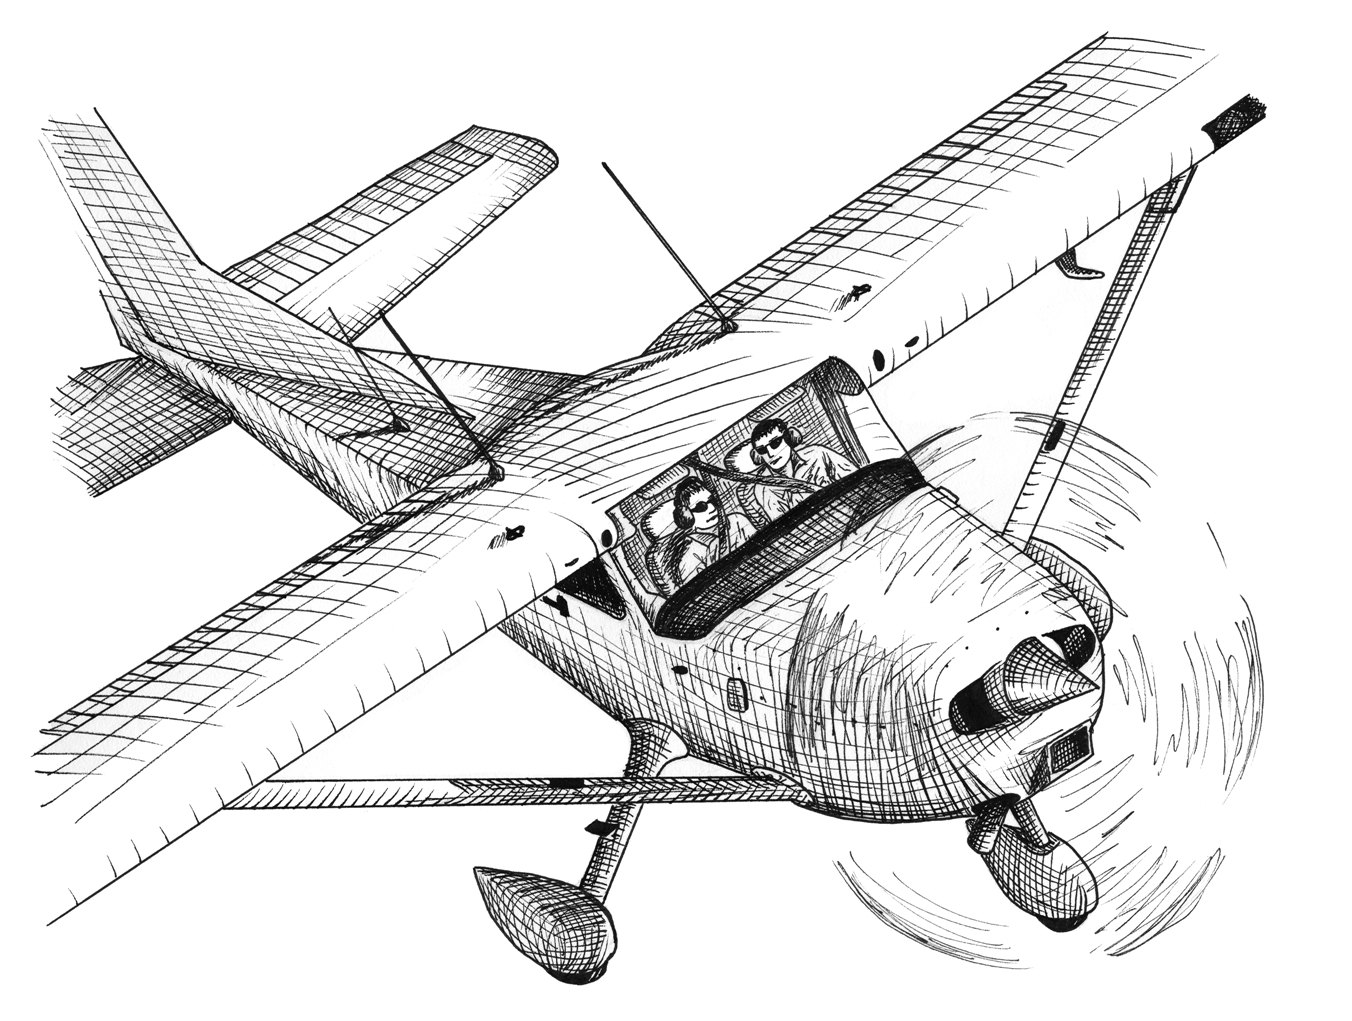 Drawn airplane black and white Aviation Lessons Tes Teach